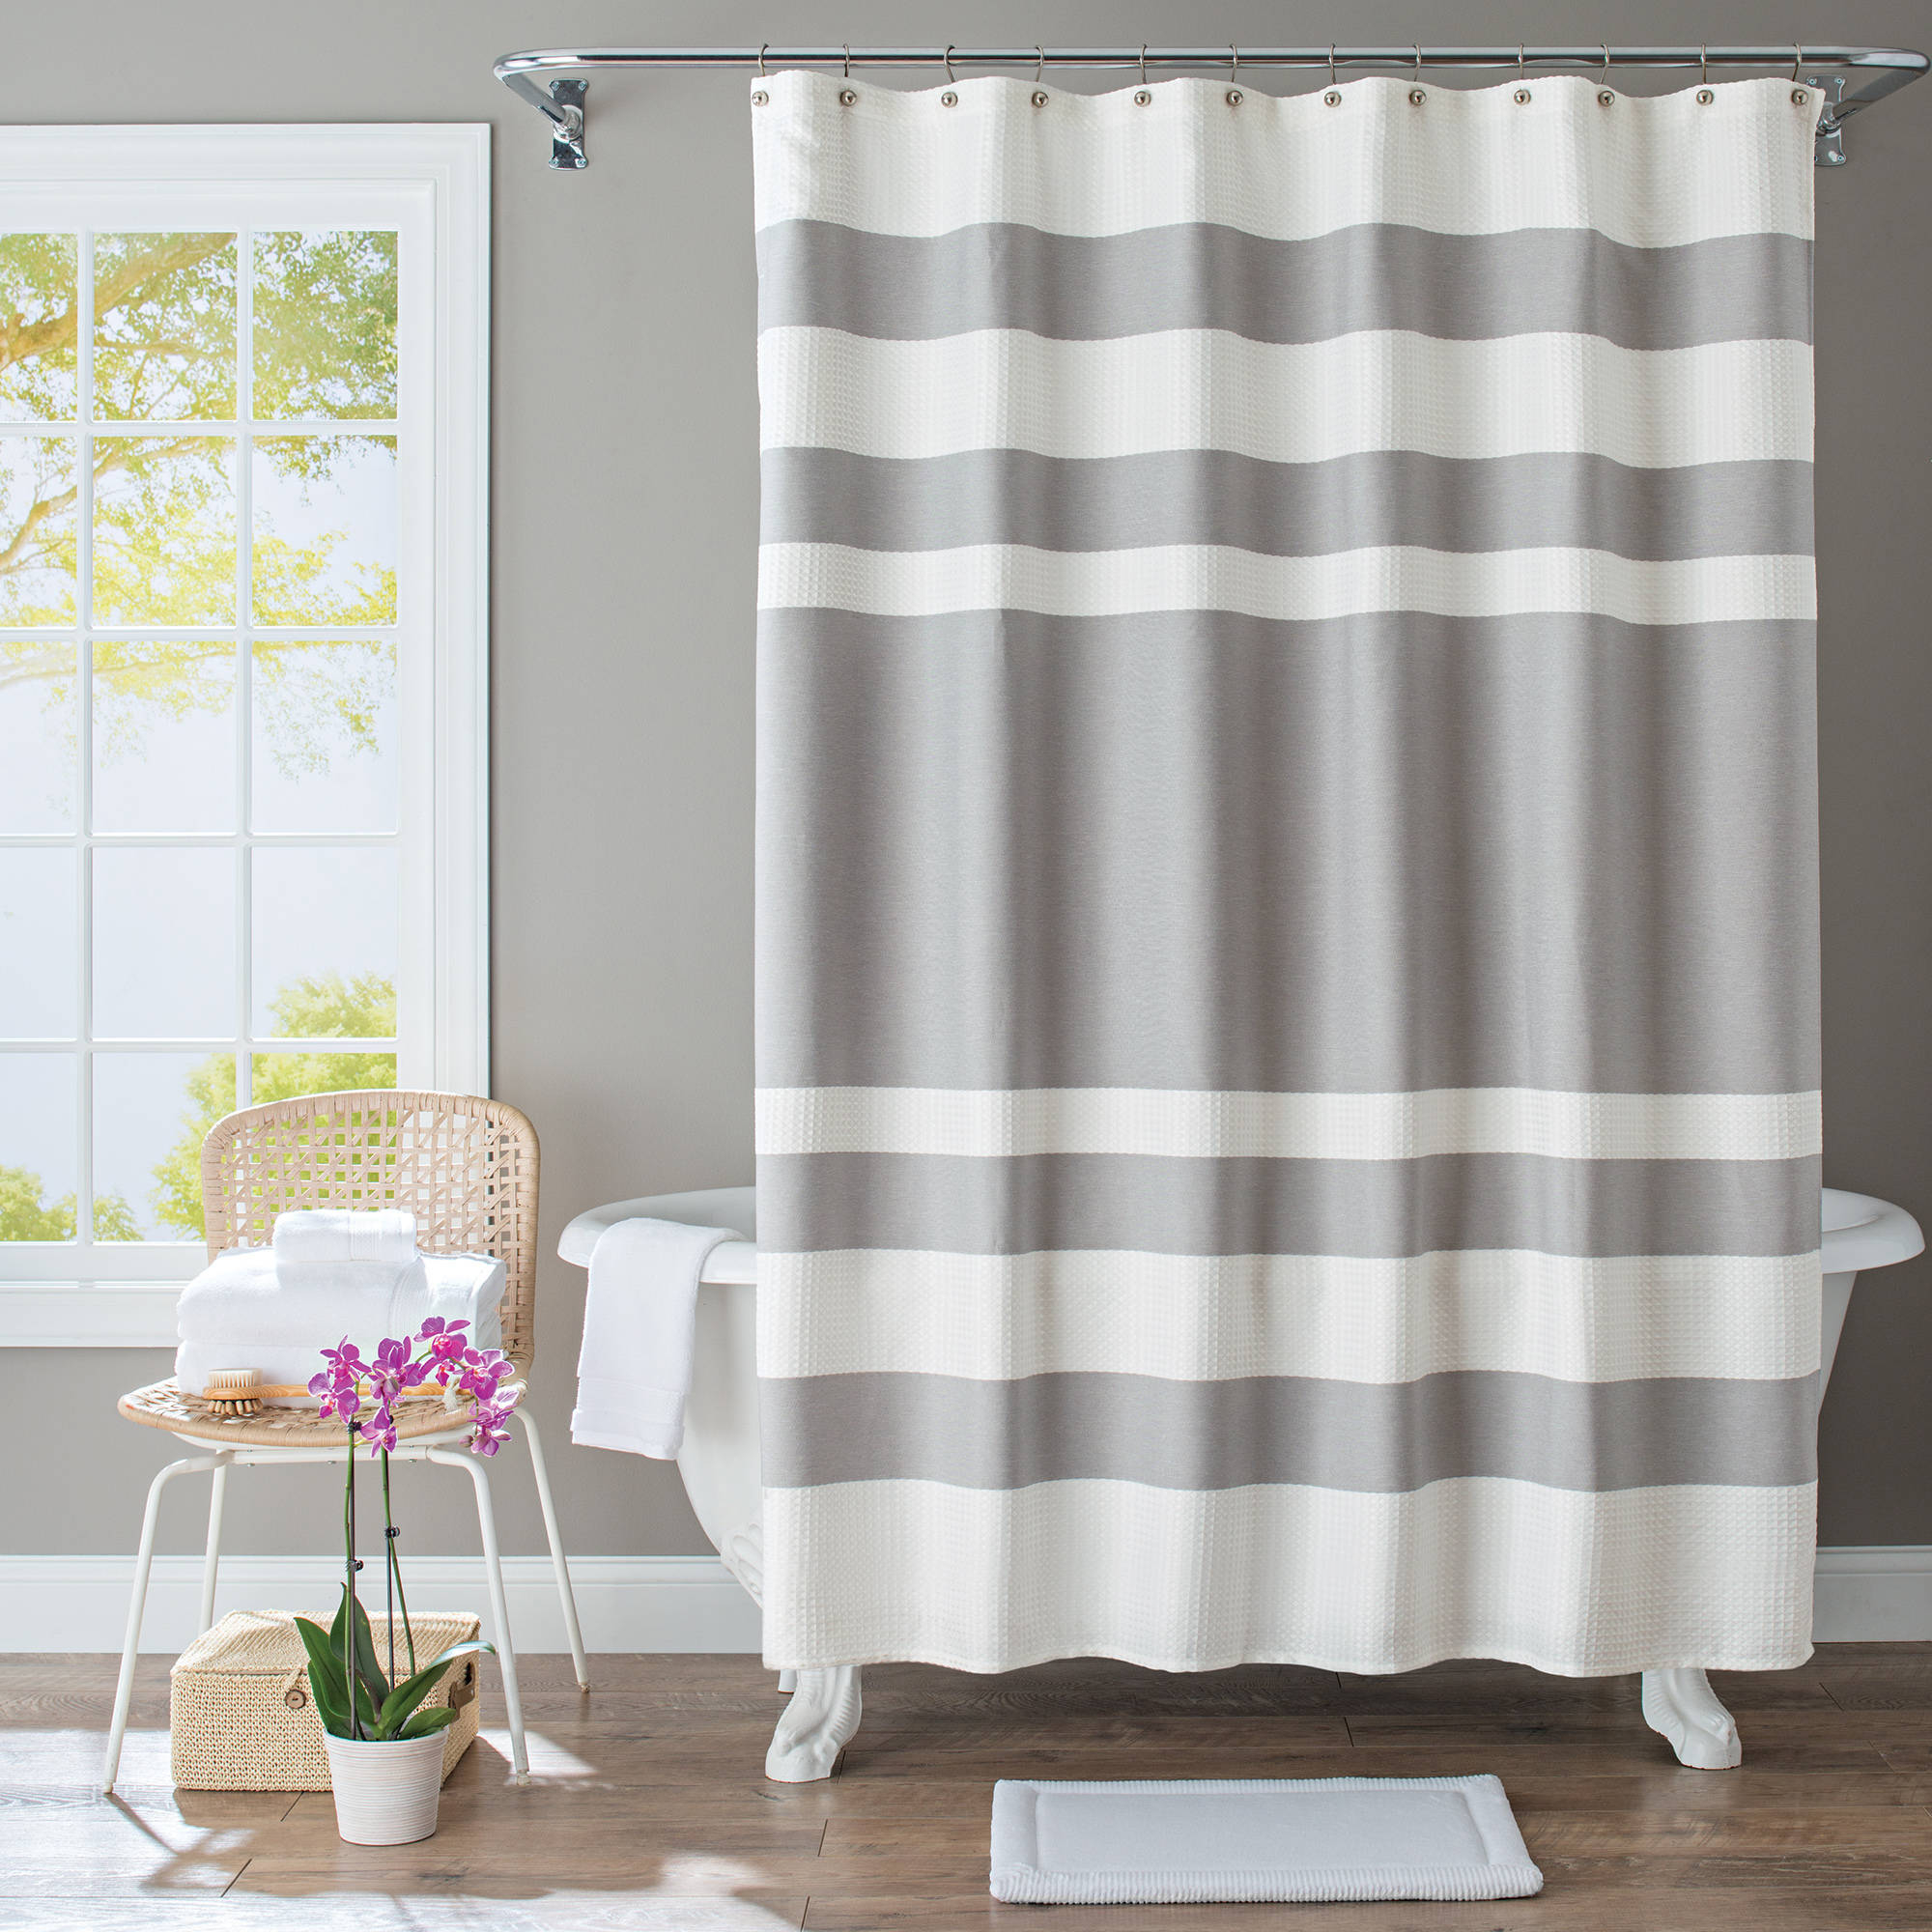 Grey White Striped Shower Curtain. Better Homes And Gardens Waffle Stripe Fabric Shower Curtain with regard to  sizing 2000 X Gray White Striped Curtains Ideas